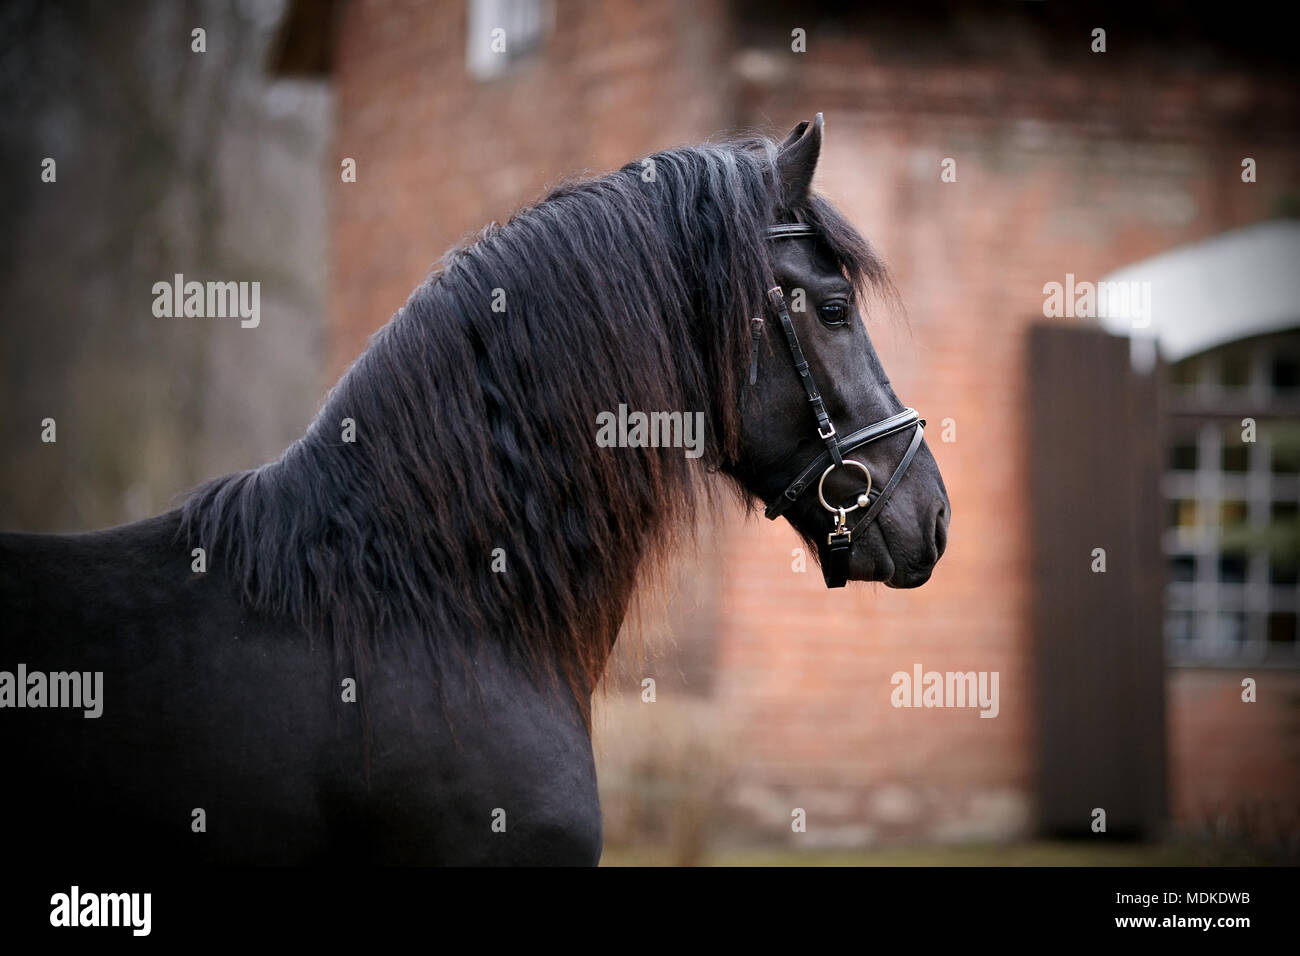 Black stallion. Portrait of a sports black horse. Thoroughbred horse. Beautiful horse. - Stock Image